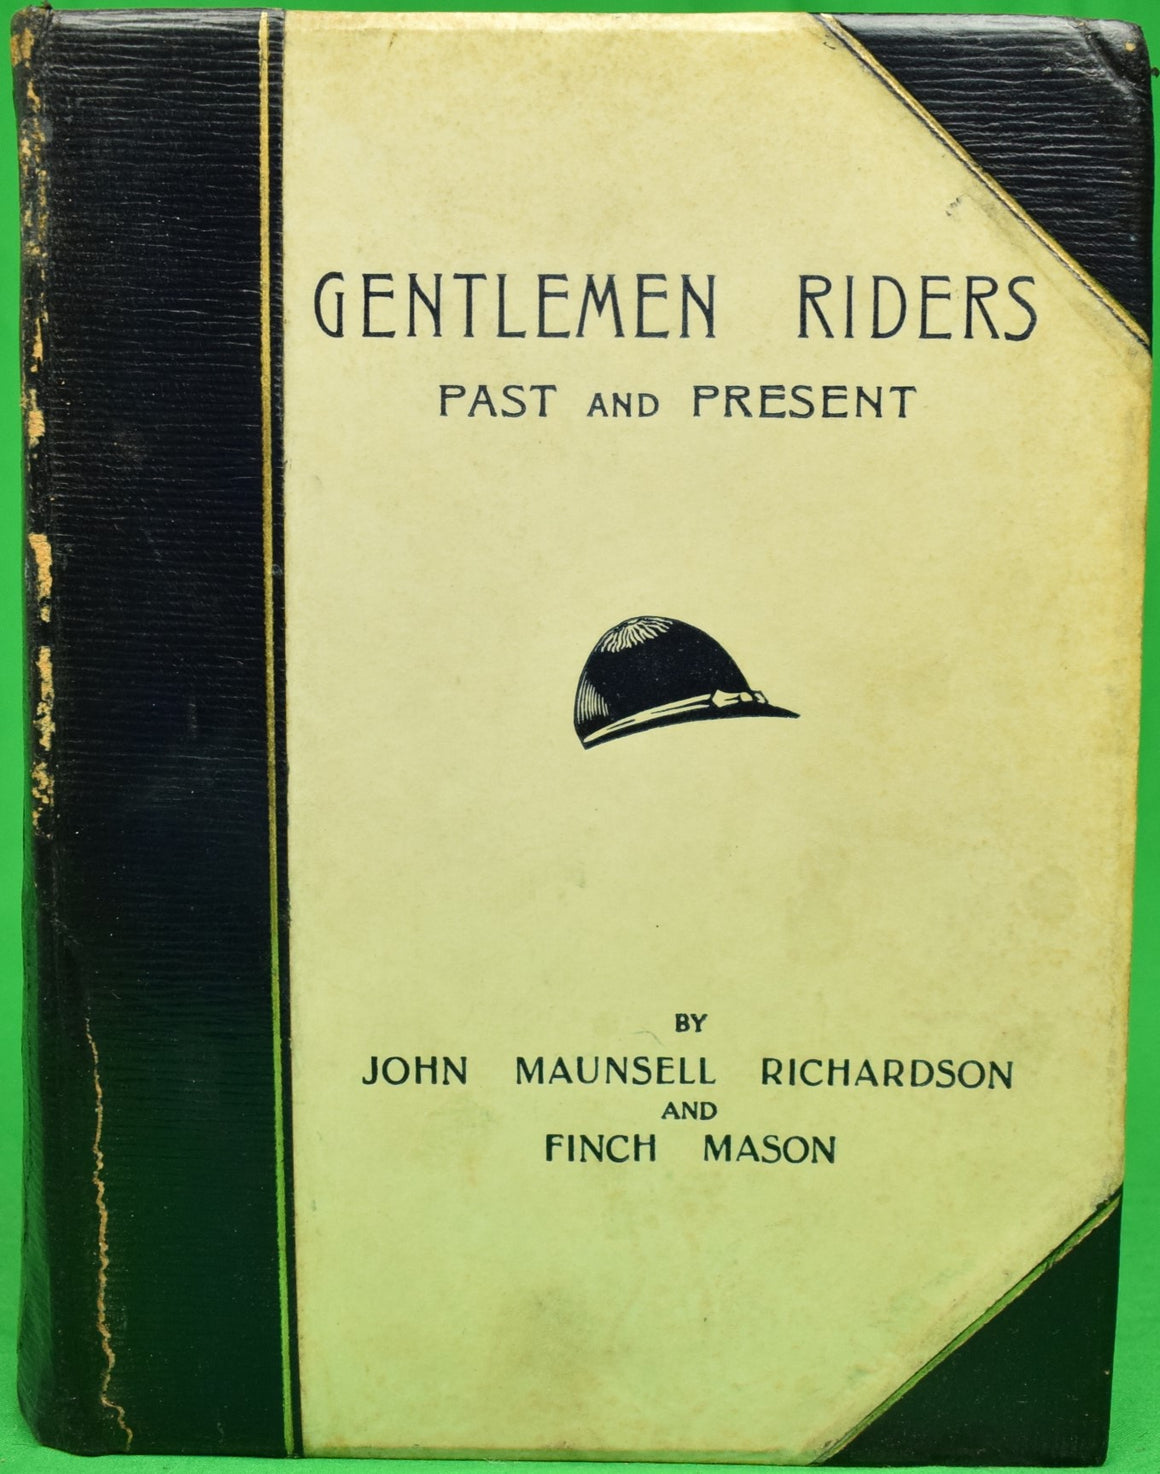 """Gentlemen Riders: Past and Present"" John Maunsell Richardson and Finch Mason"